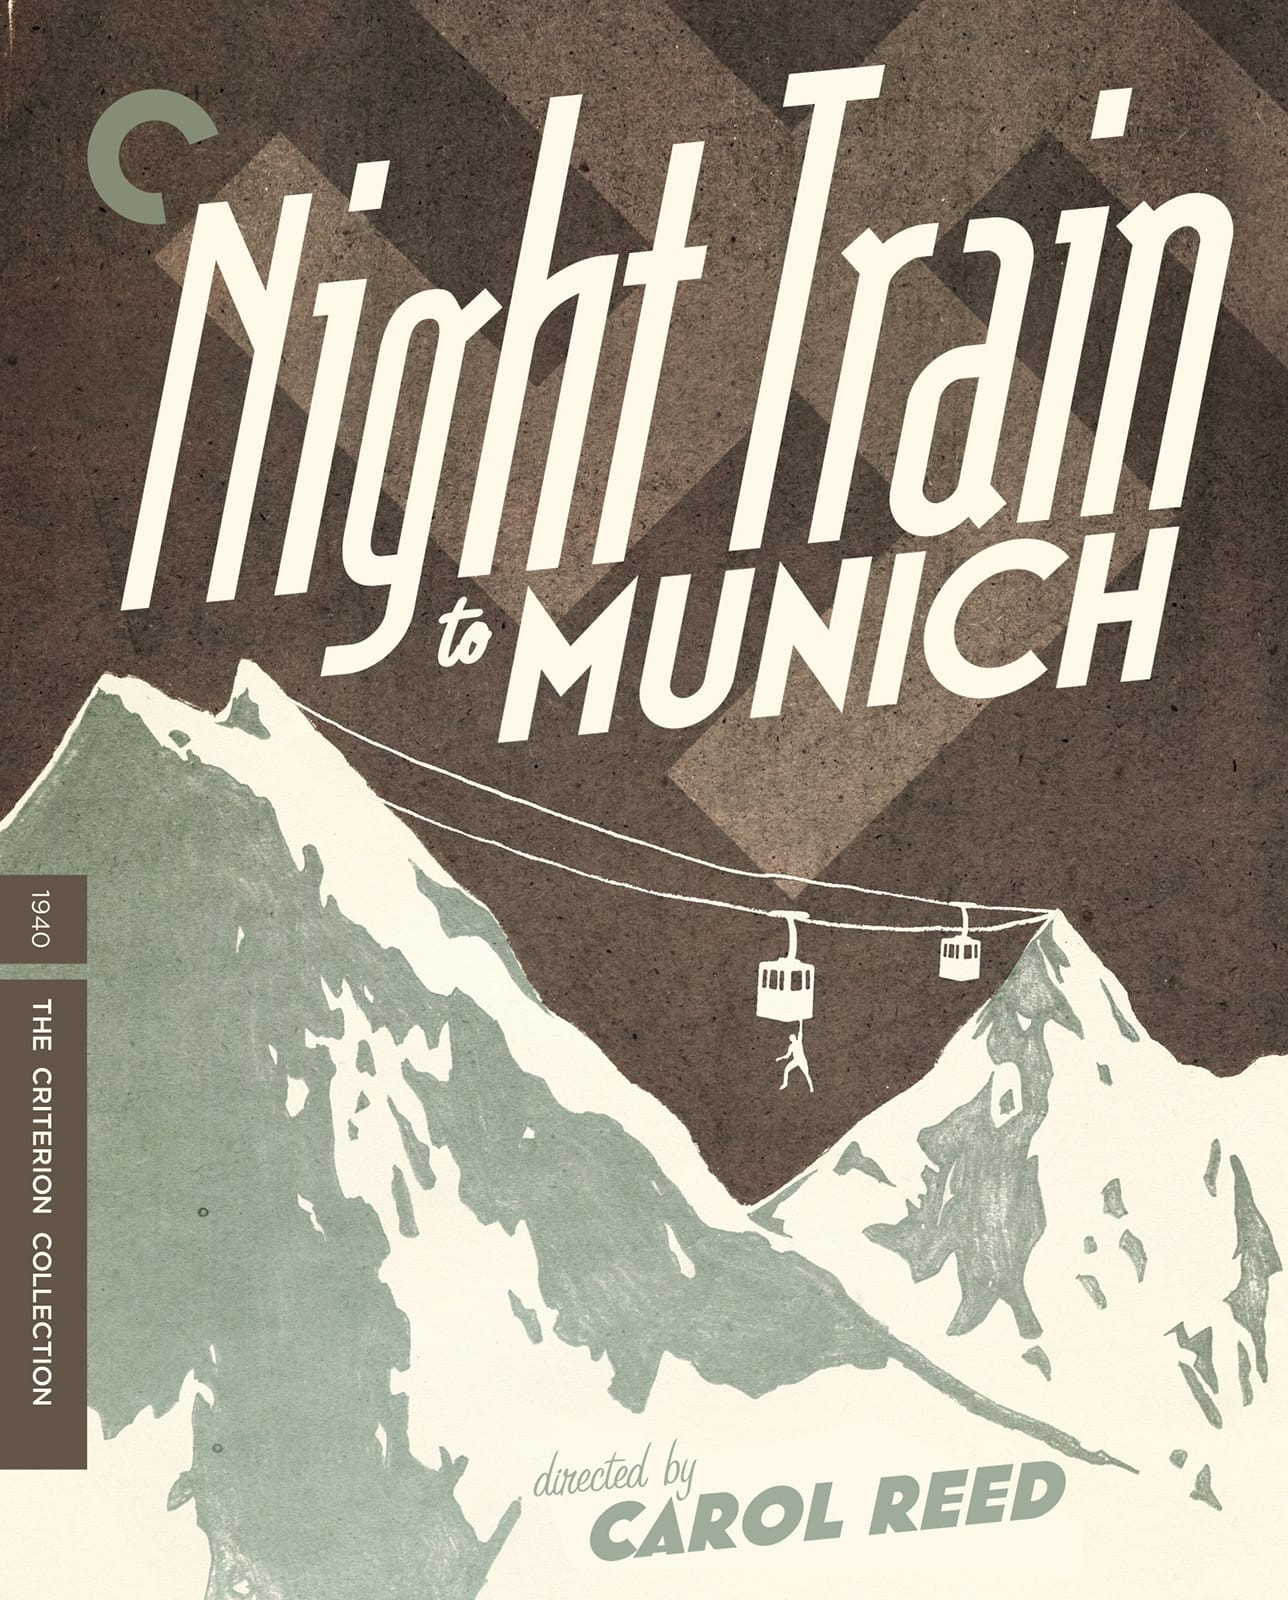 Blu Ray Review: Carol Reed's Night Train To Munich On The Criterion Intended For 2019 Reeds Migration Wall Decor Sets (Set Of 3) (View 19 of 20)